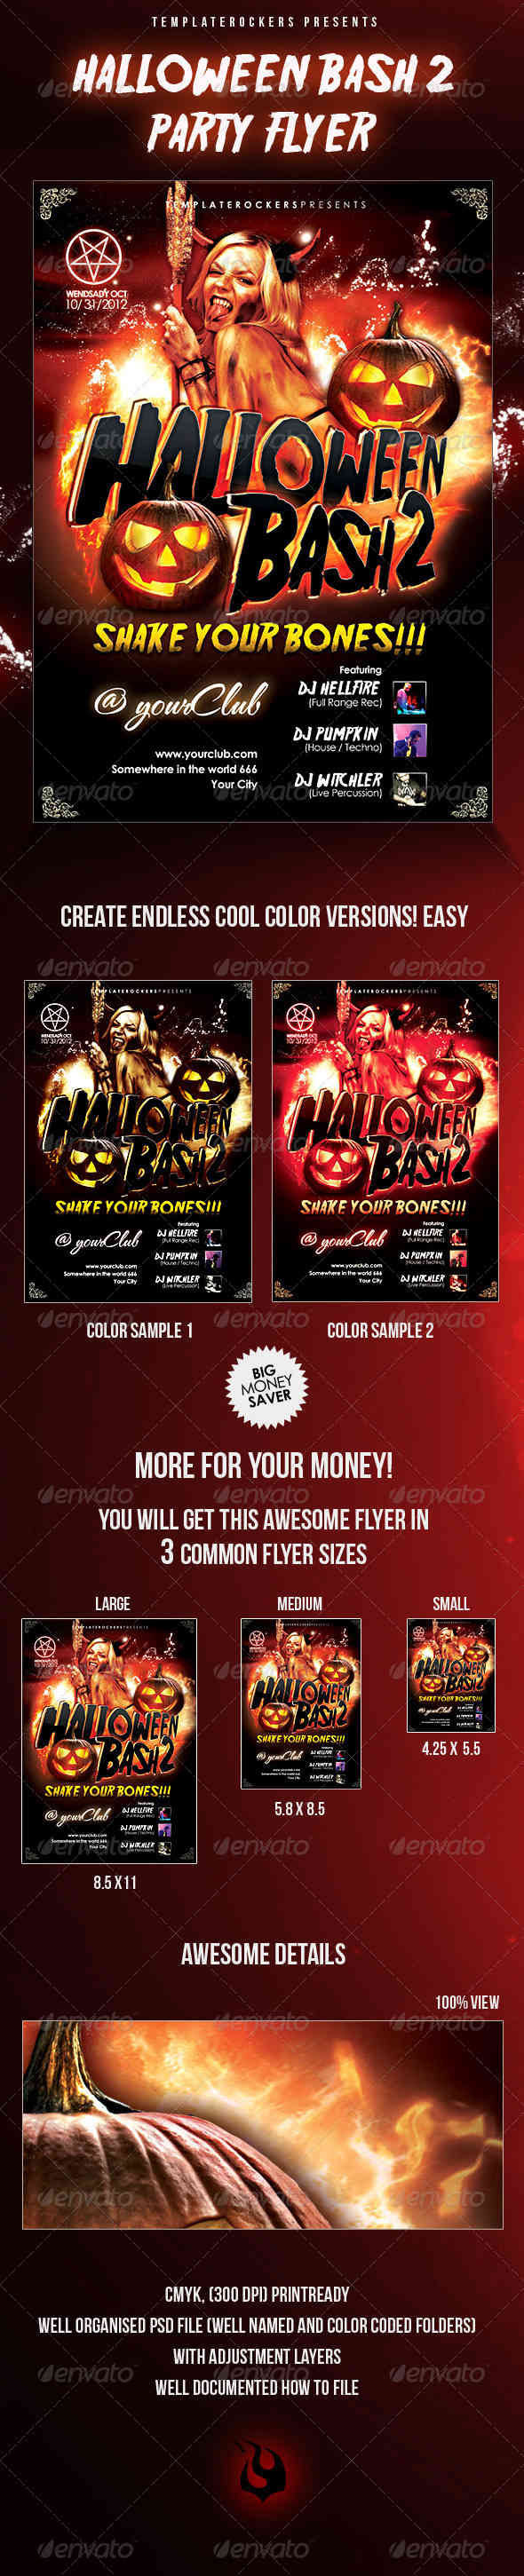 Halloween Bash 2 Party Flyer - 3 Sizes